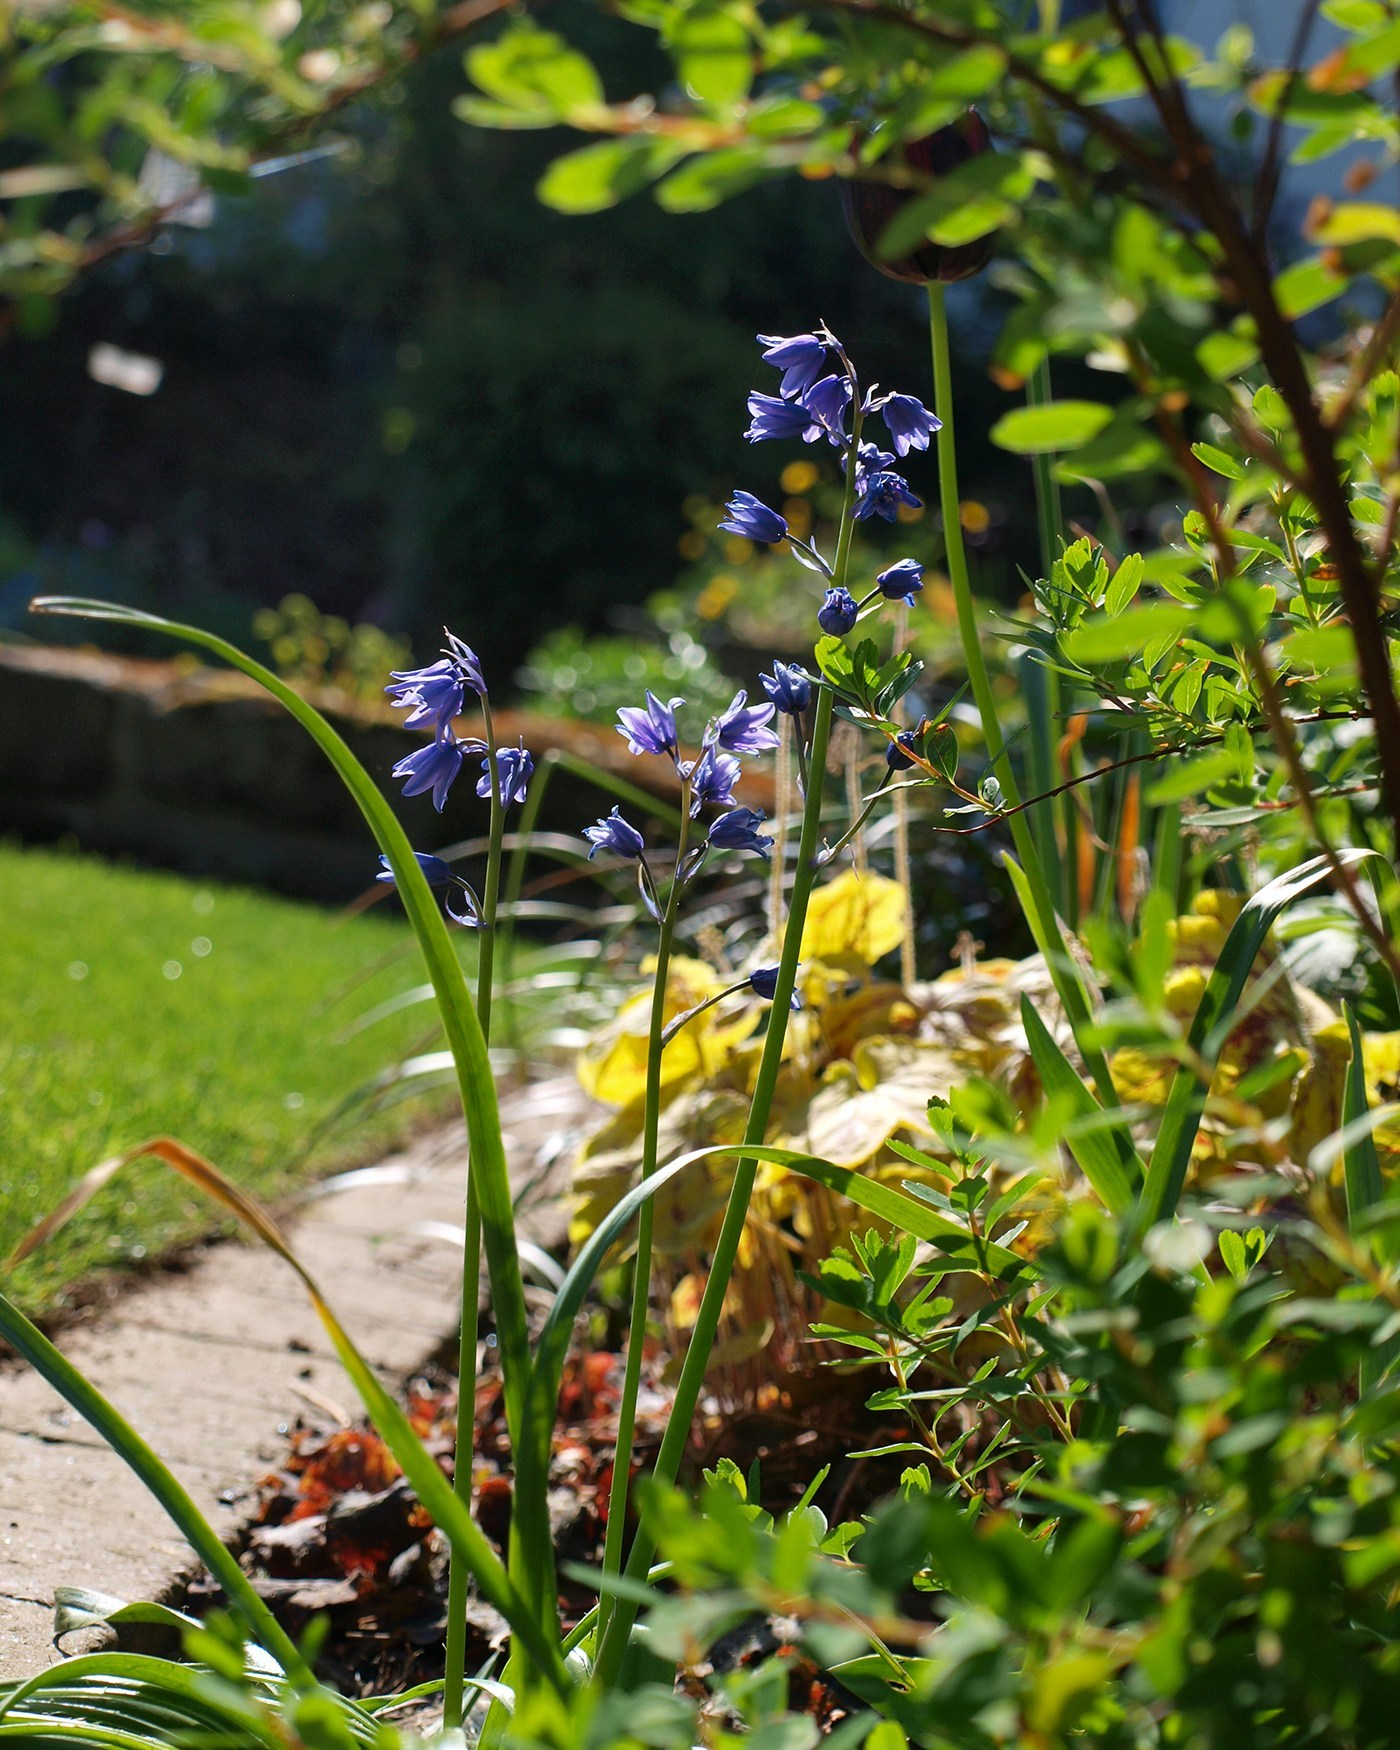 Lush Garden Design Bluebells as Part of Successional Planting